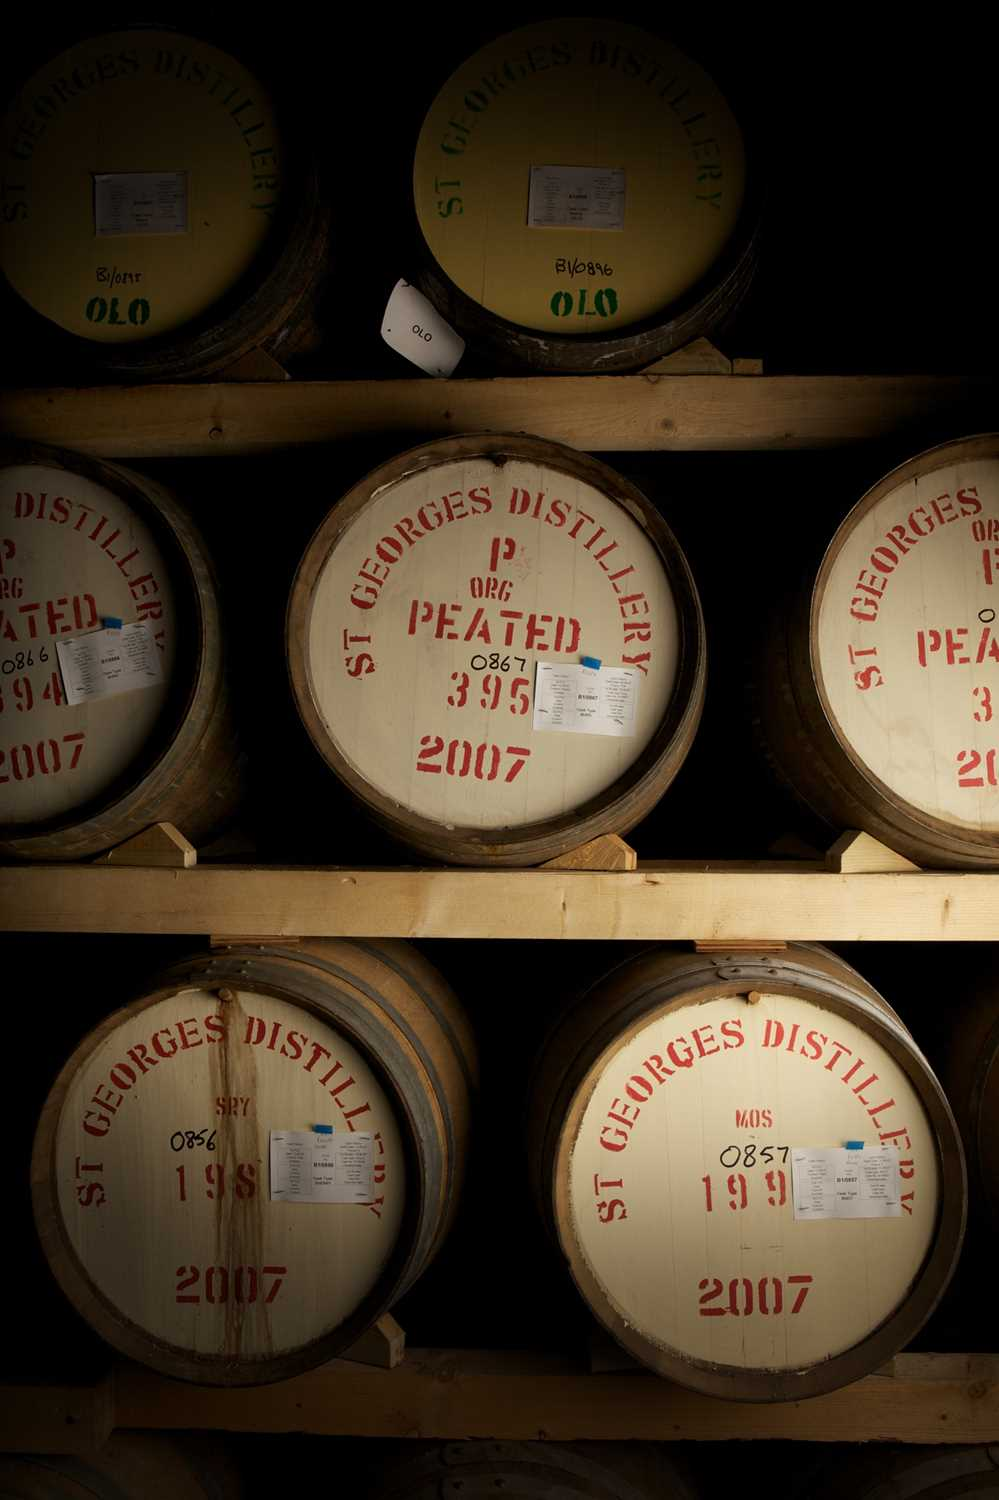 Private Tour for 8 People of England's Oldest Whisky Distillery with The Head Distiller A wonderful - Image 2 of 4